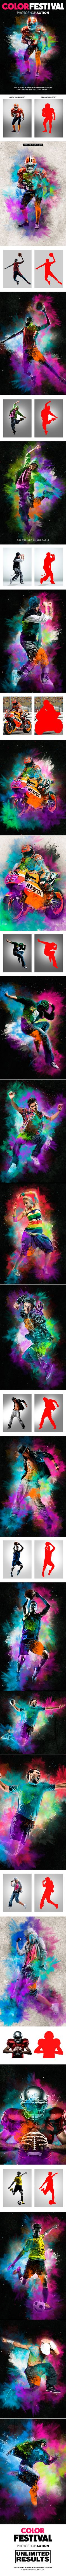 Color Festival Photoshop Action  Dust Effect — Photoshop ATN #action • Download ➝ https://graphicriver.net/item/color-festival-photoshop-action-dust-effect/19250033?ref=pxcr